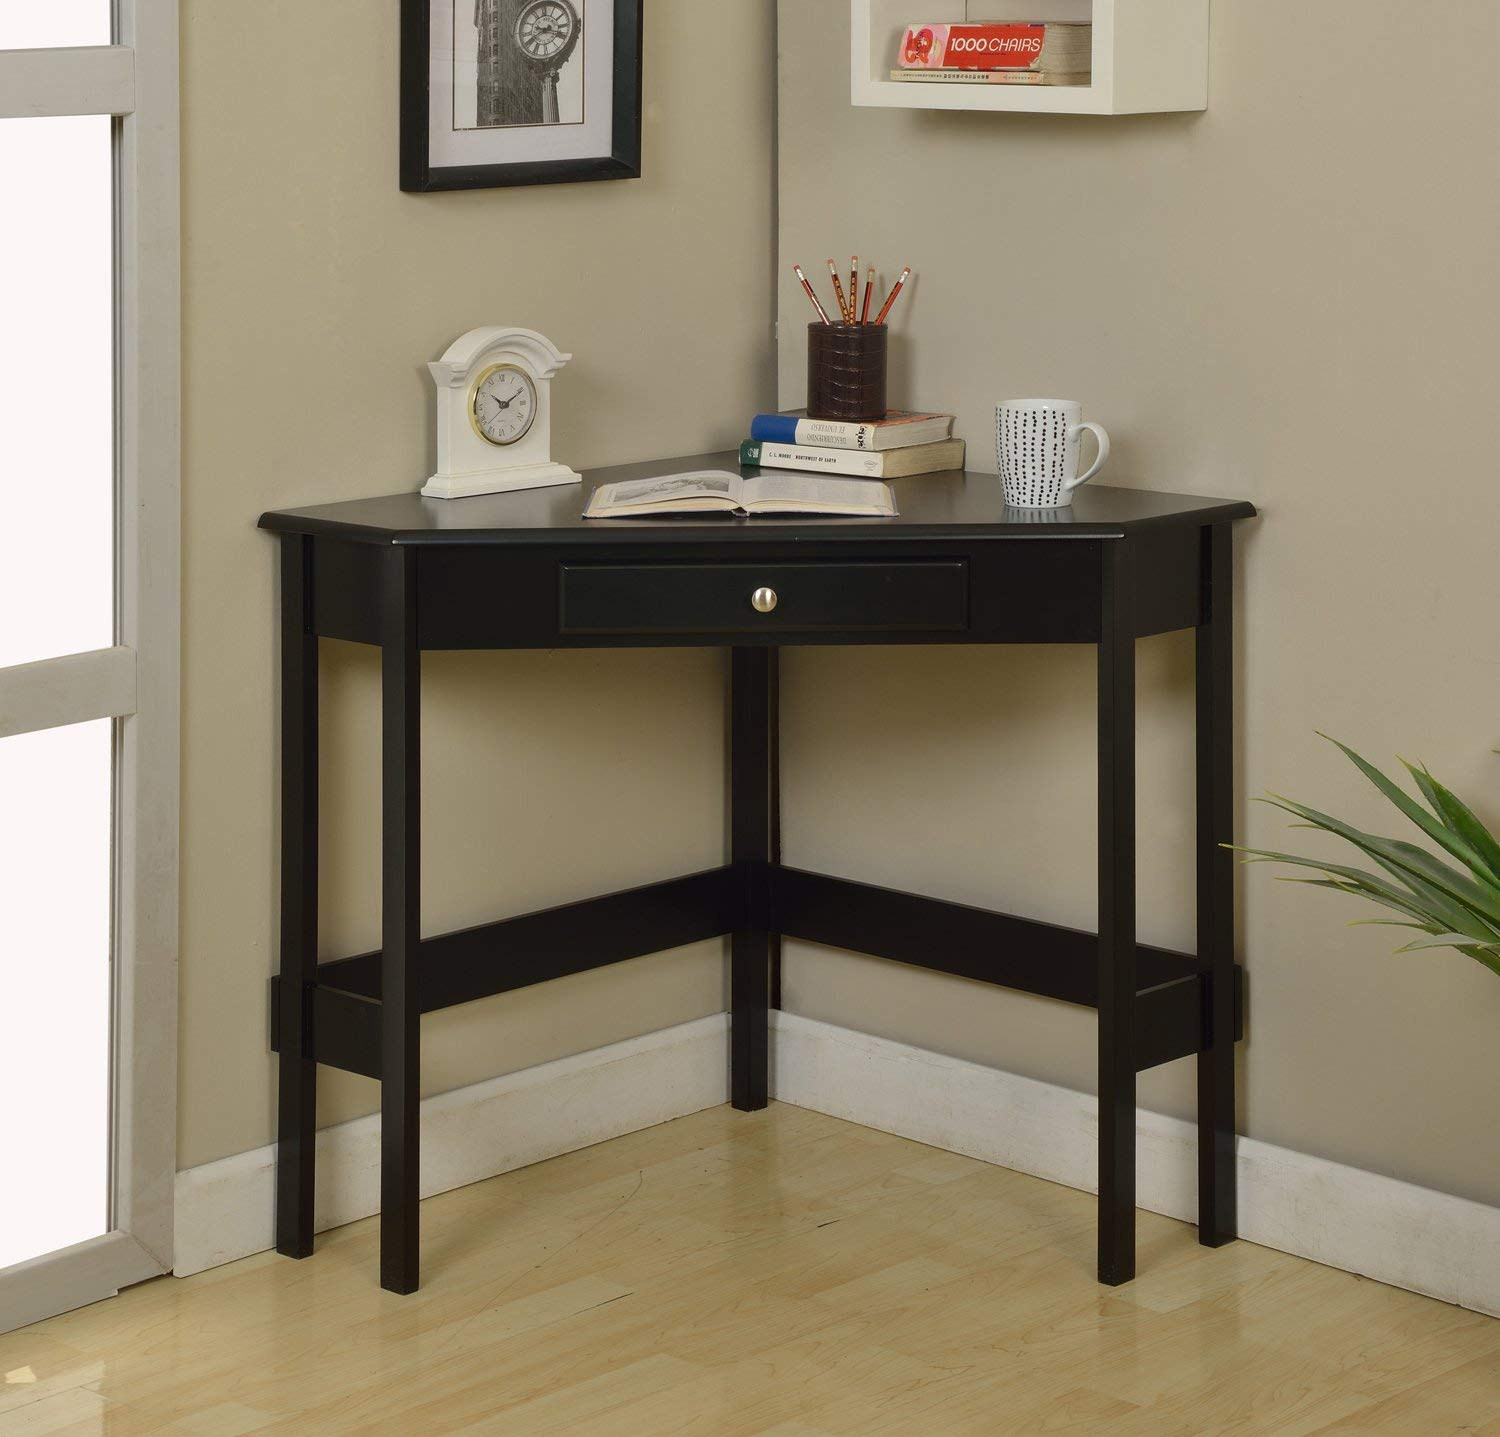 Kings Brand Furniture Wood Corner Desk With Drawer (Black)